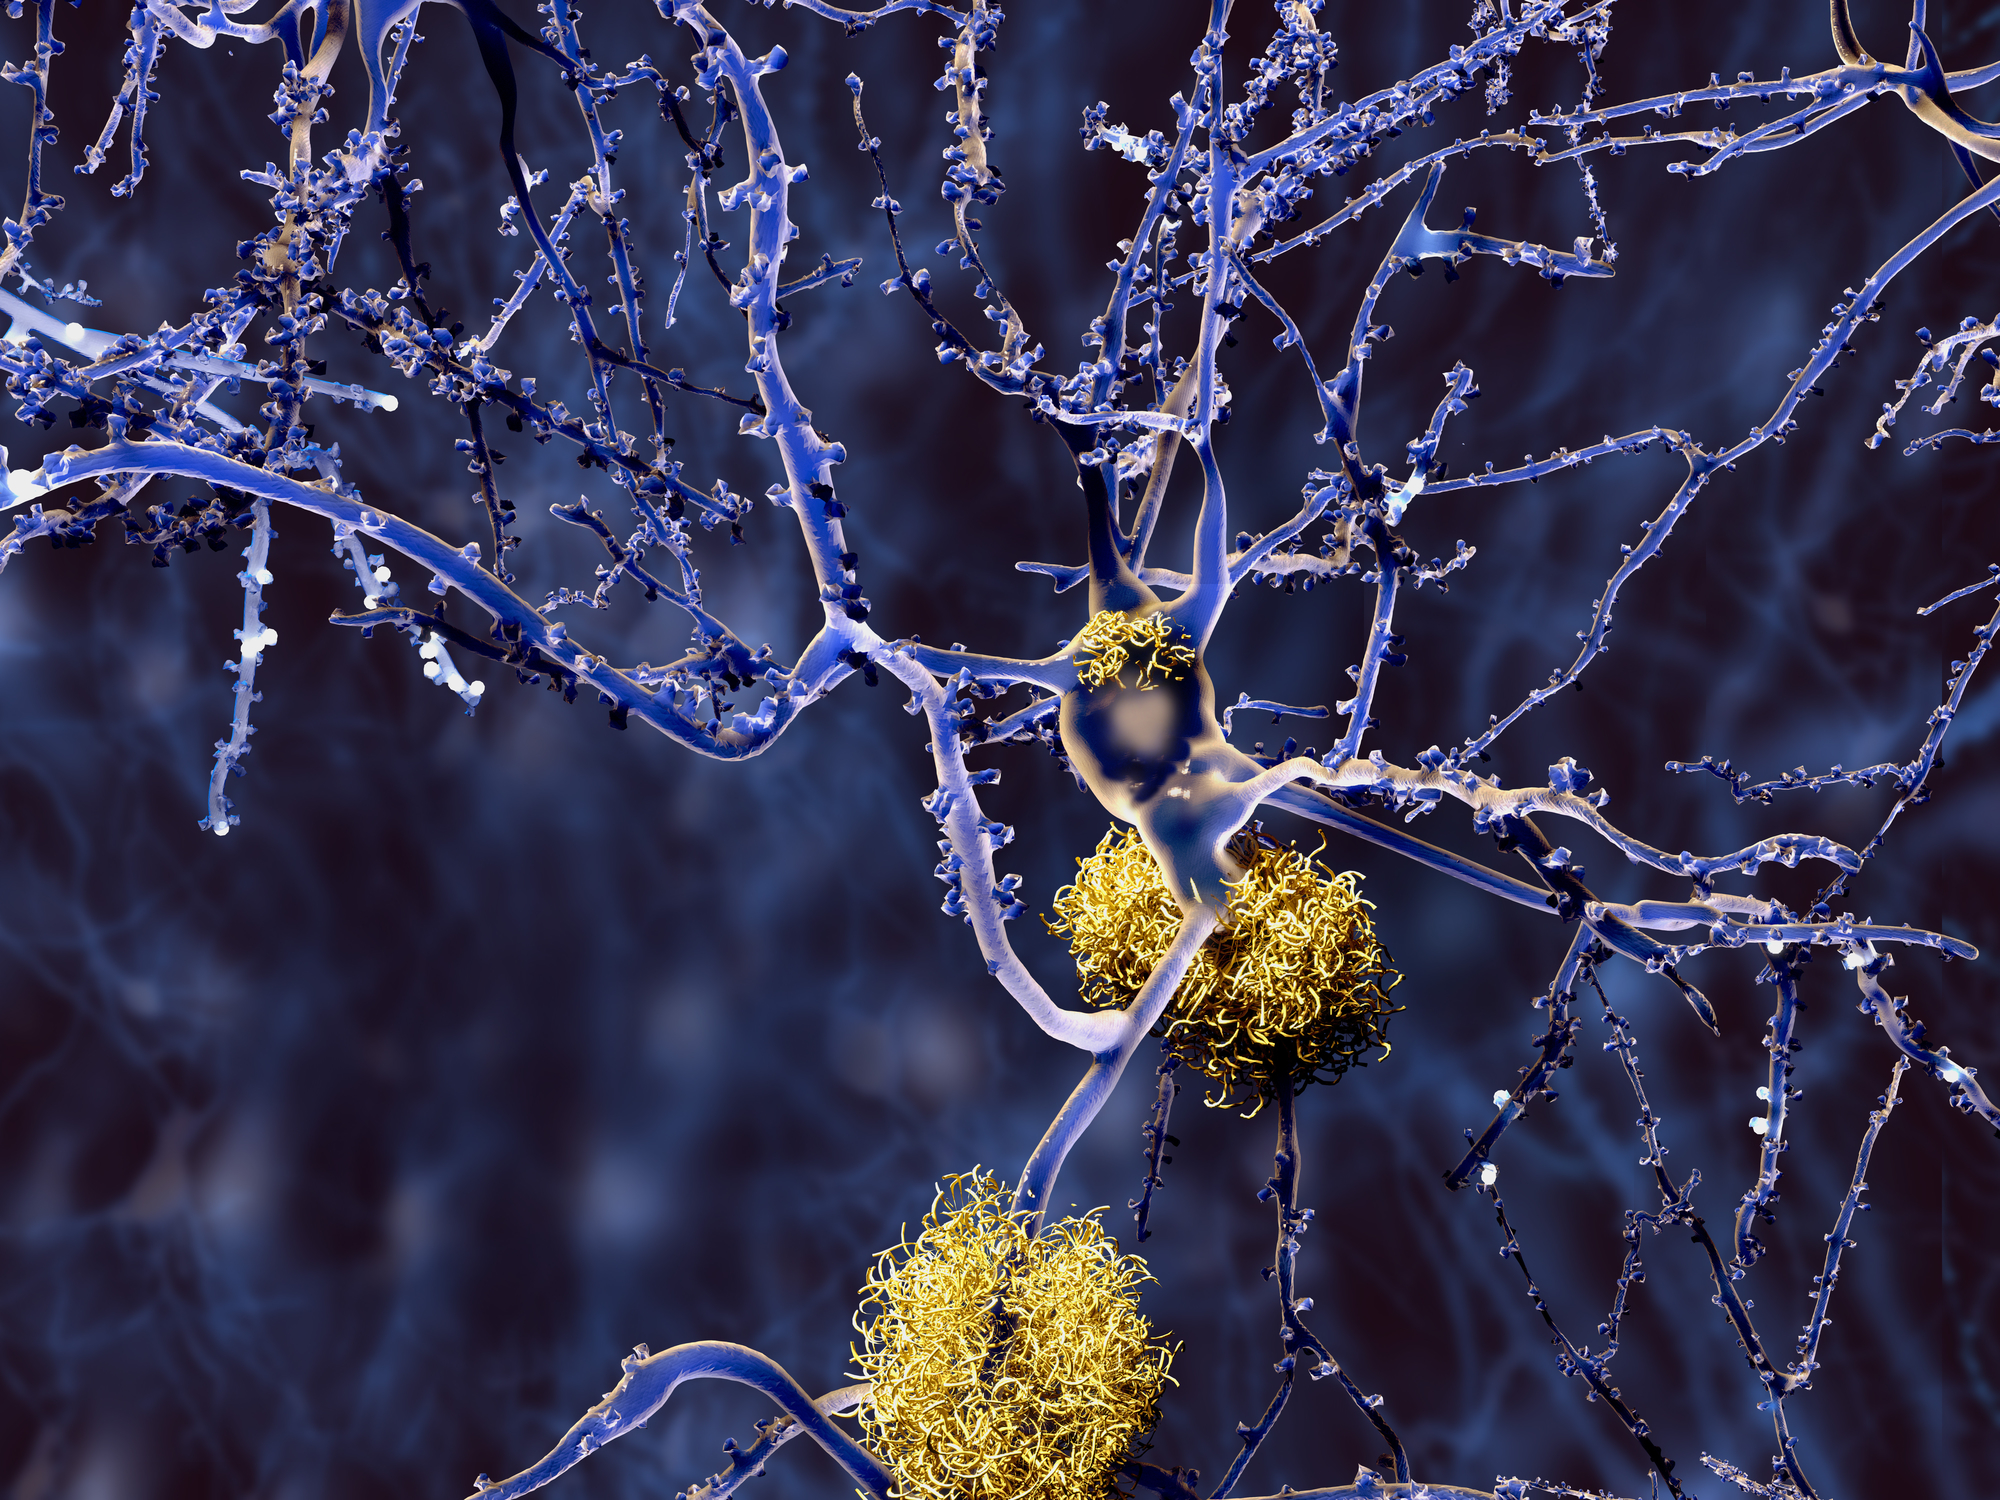 Novel protein suggested as core of Alzheimer's amyloid plaques